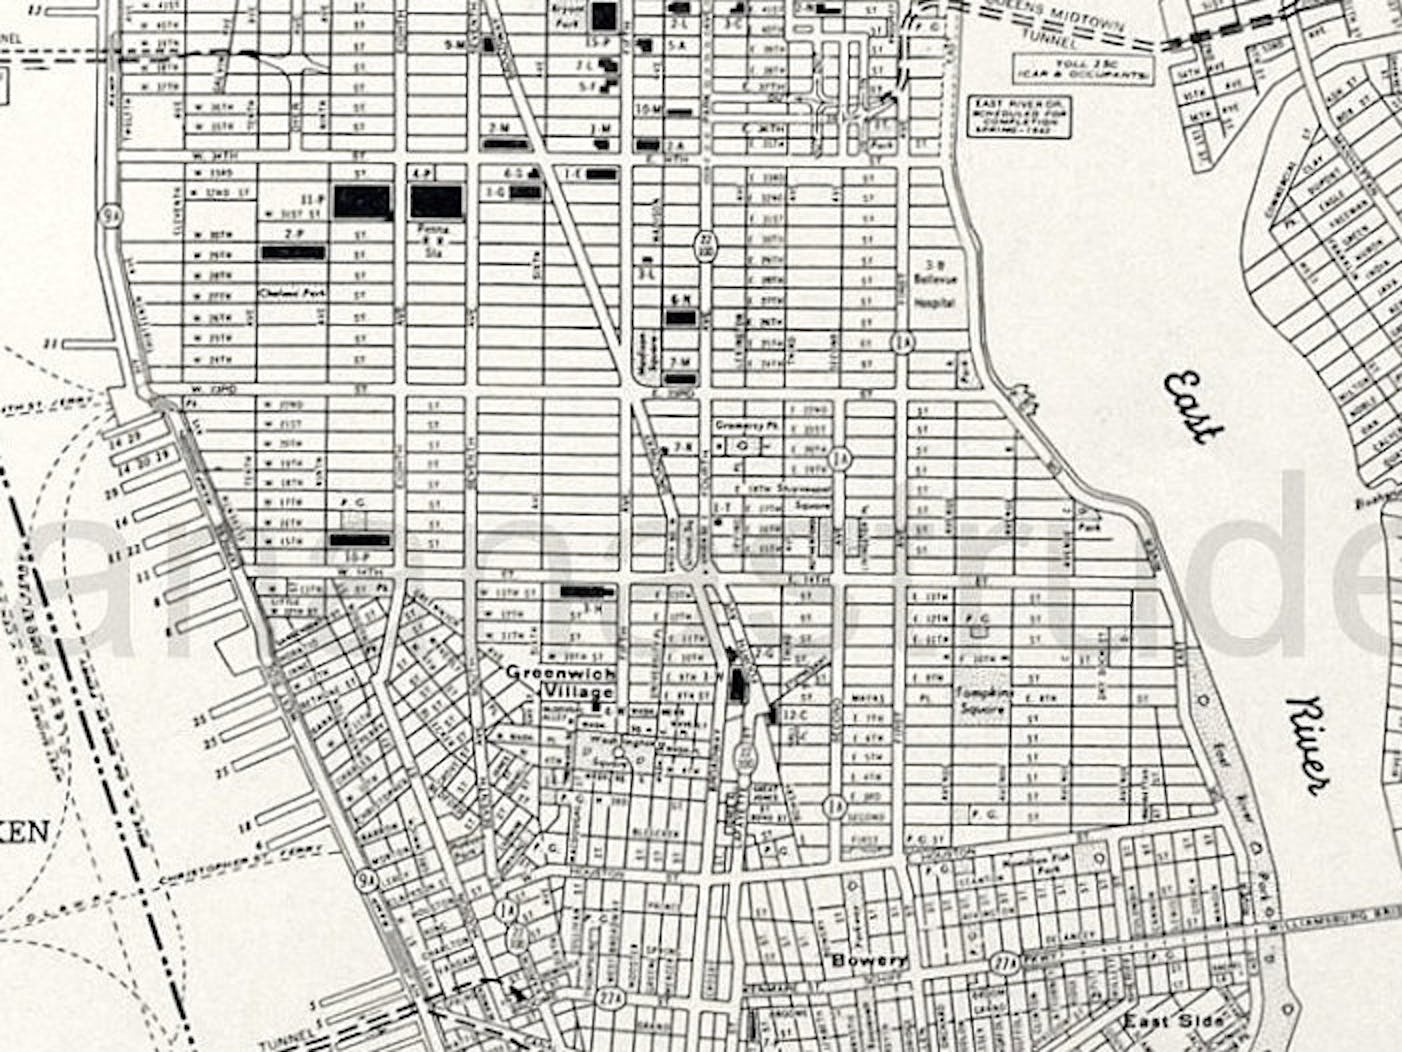 Old Manhattan street map